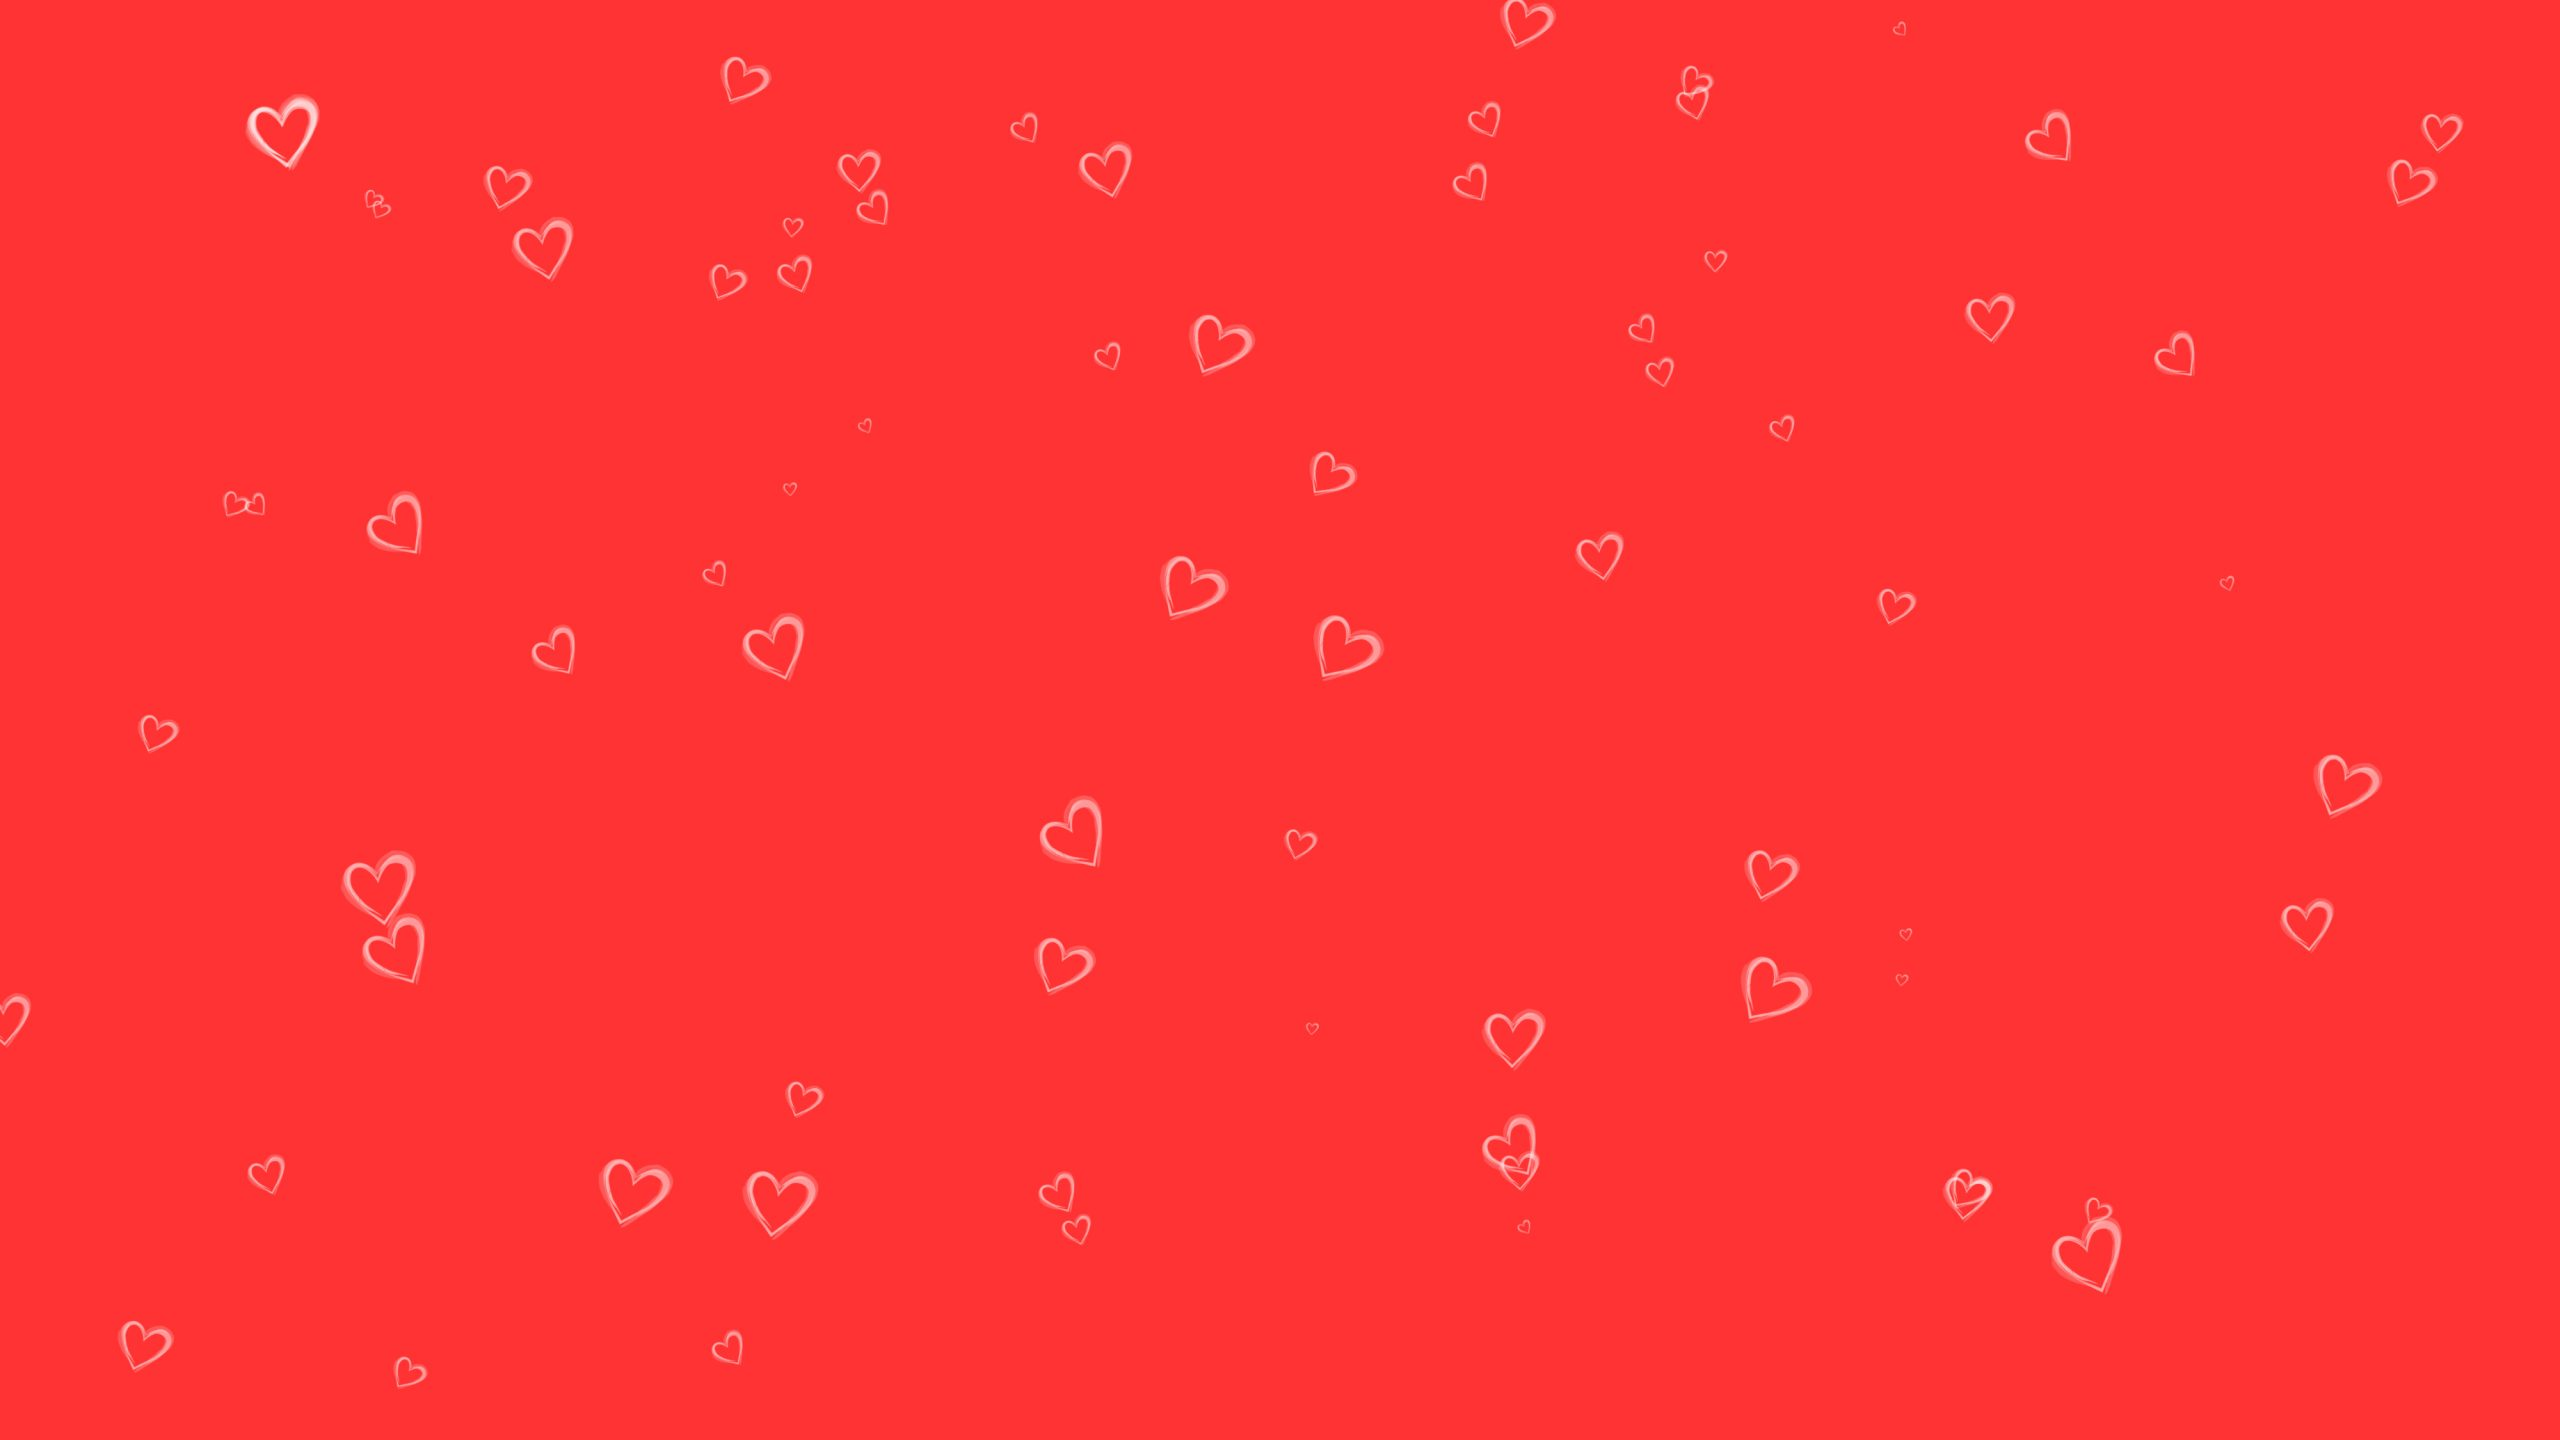 Heart shape and red background wallpaper